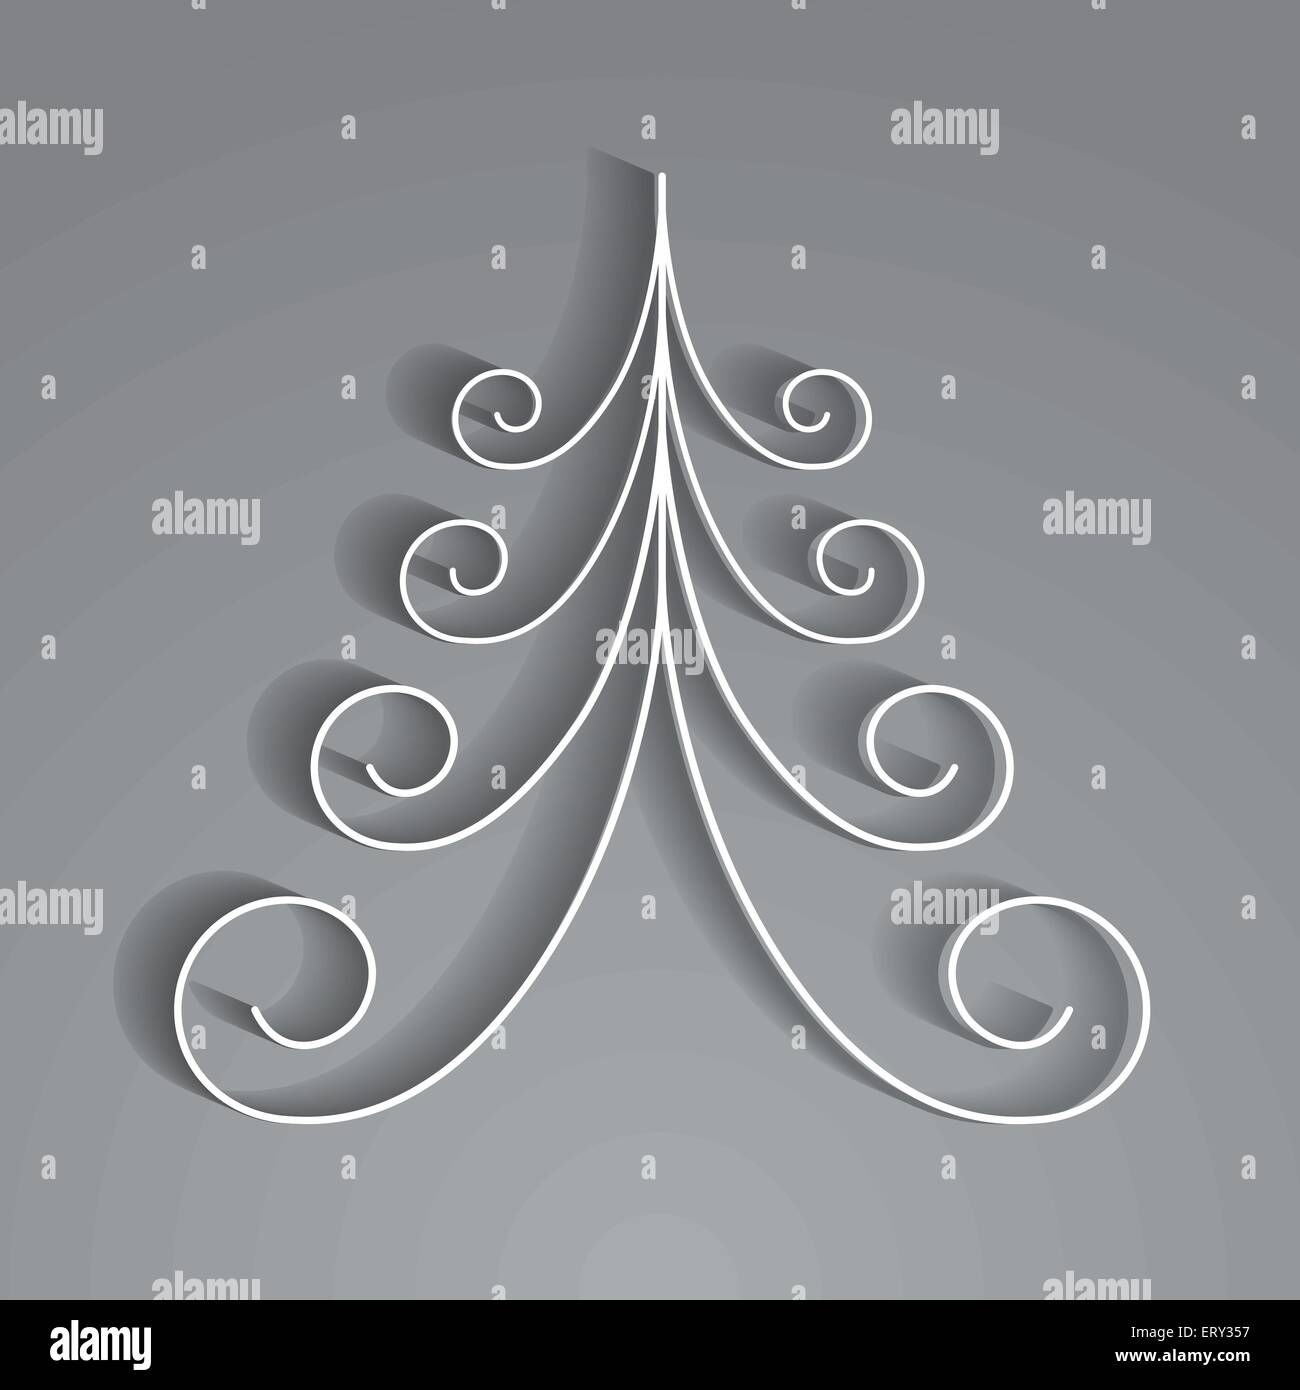 3d Paper Christmas Tree Template.White 3d Paper Christmas Tree Rgb Eps 10 Vector Stock Vector Art